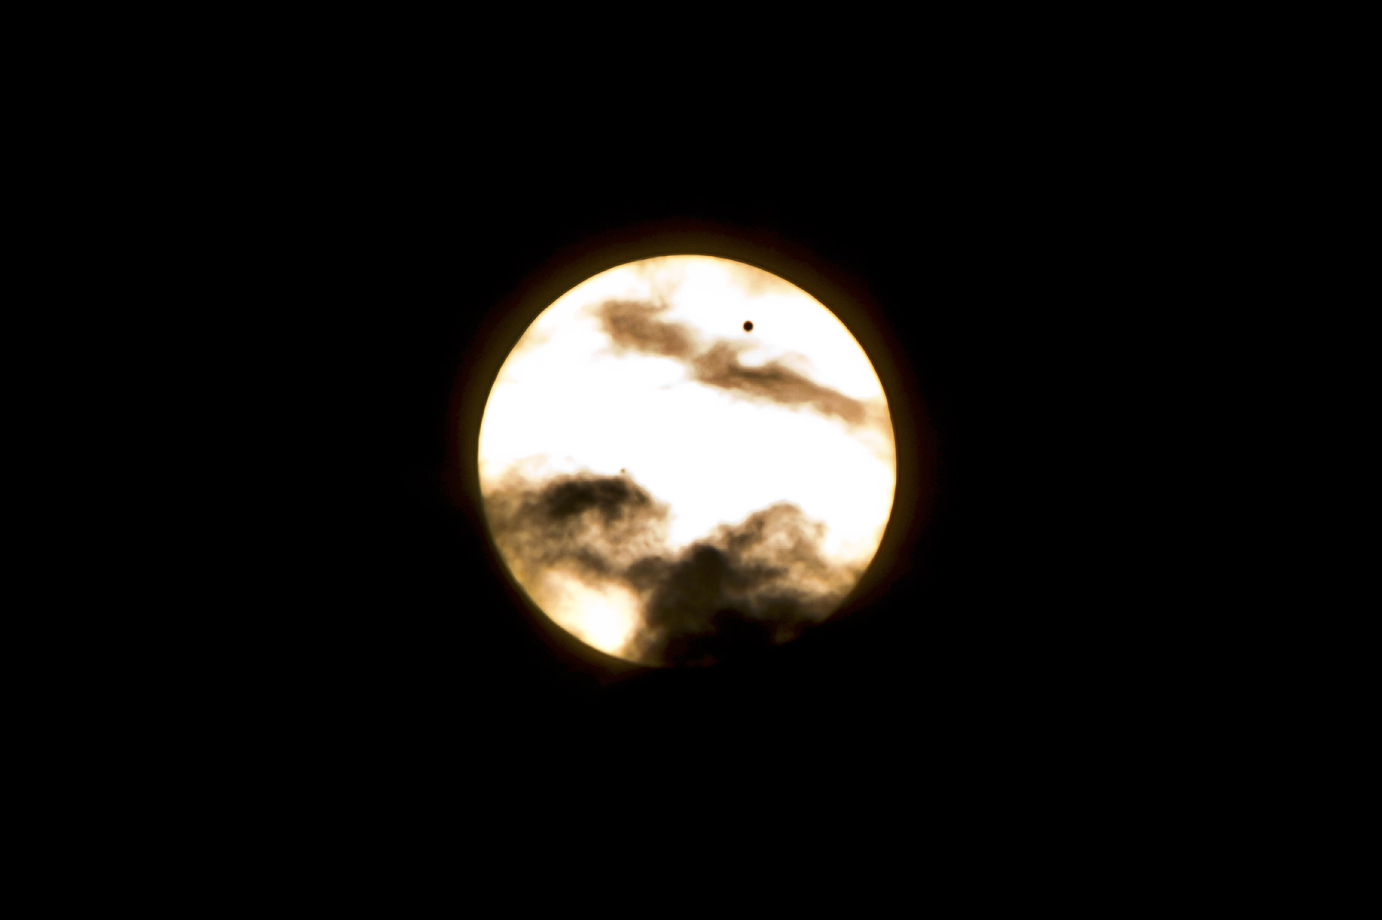 Venus Crossing the Sun in the Clouds